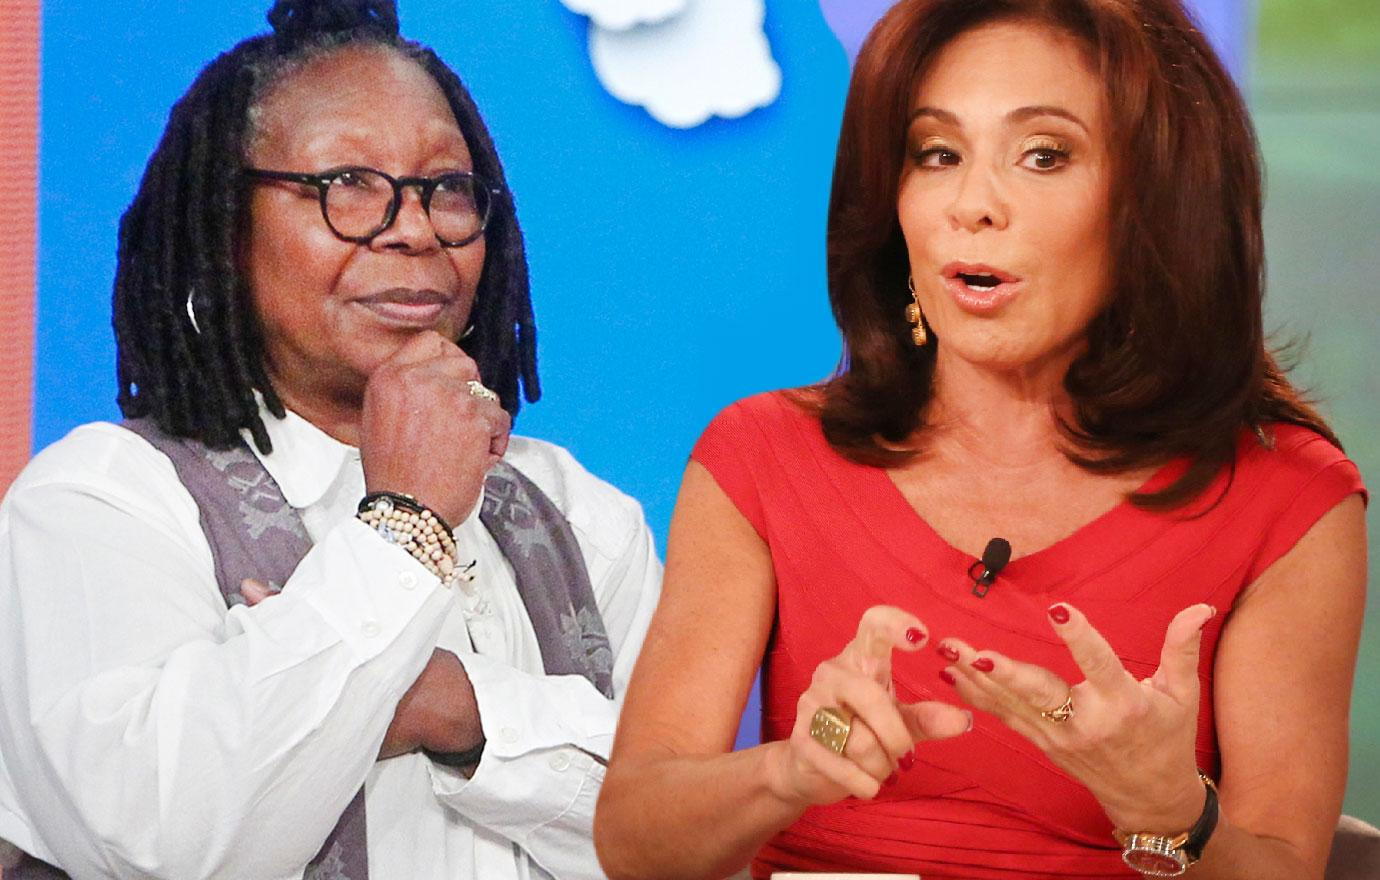 Judge Jeanine Pirro Says Whoopi Goldberg Treated Her Like Dirt On The View